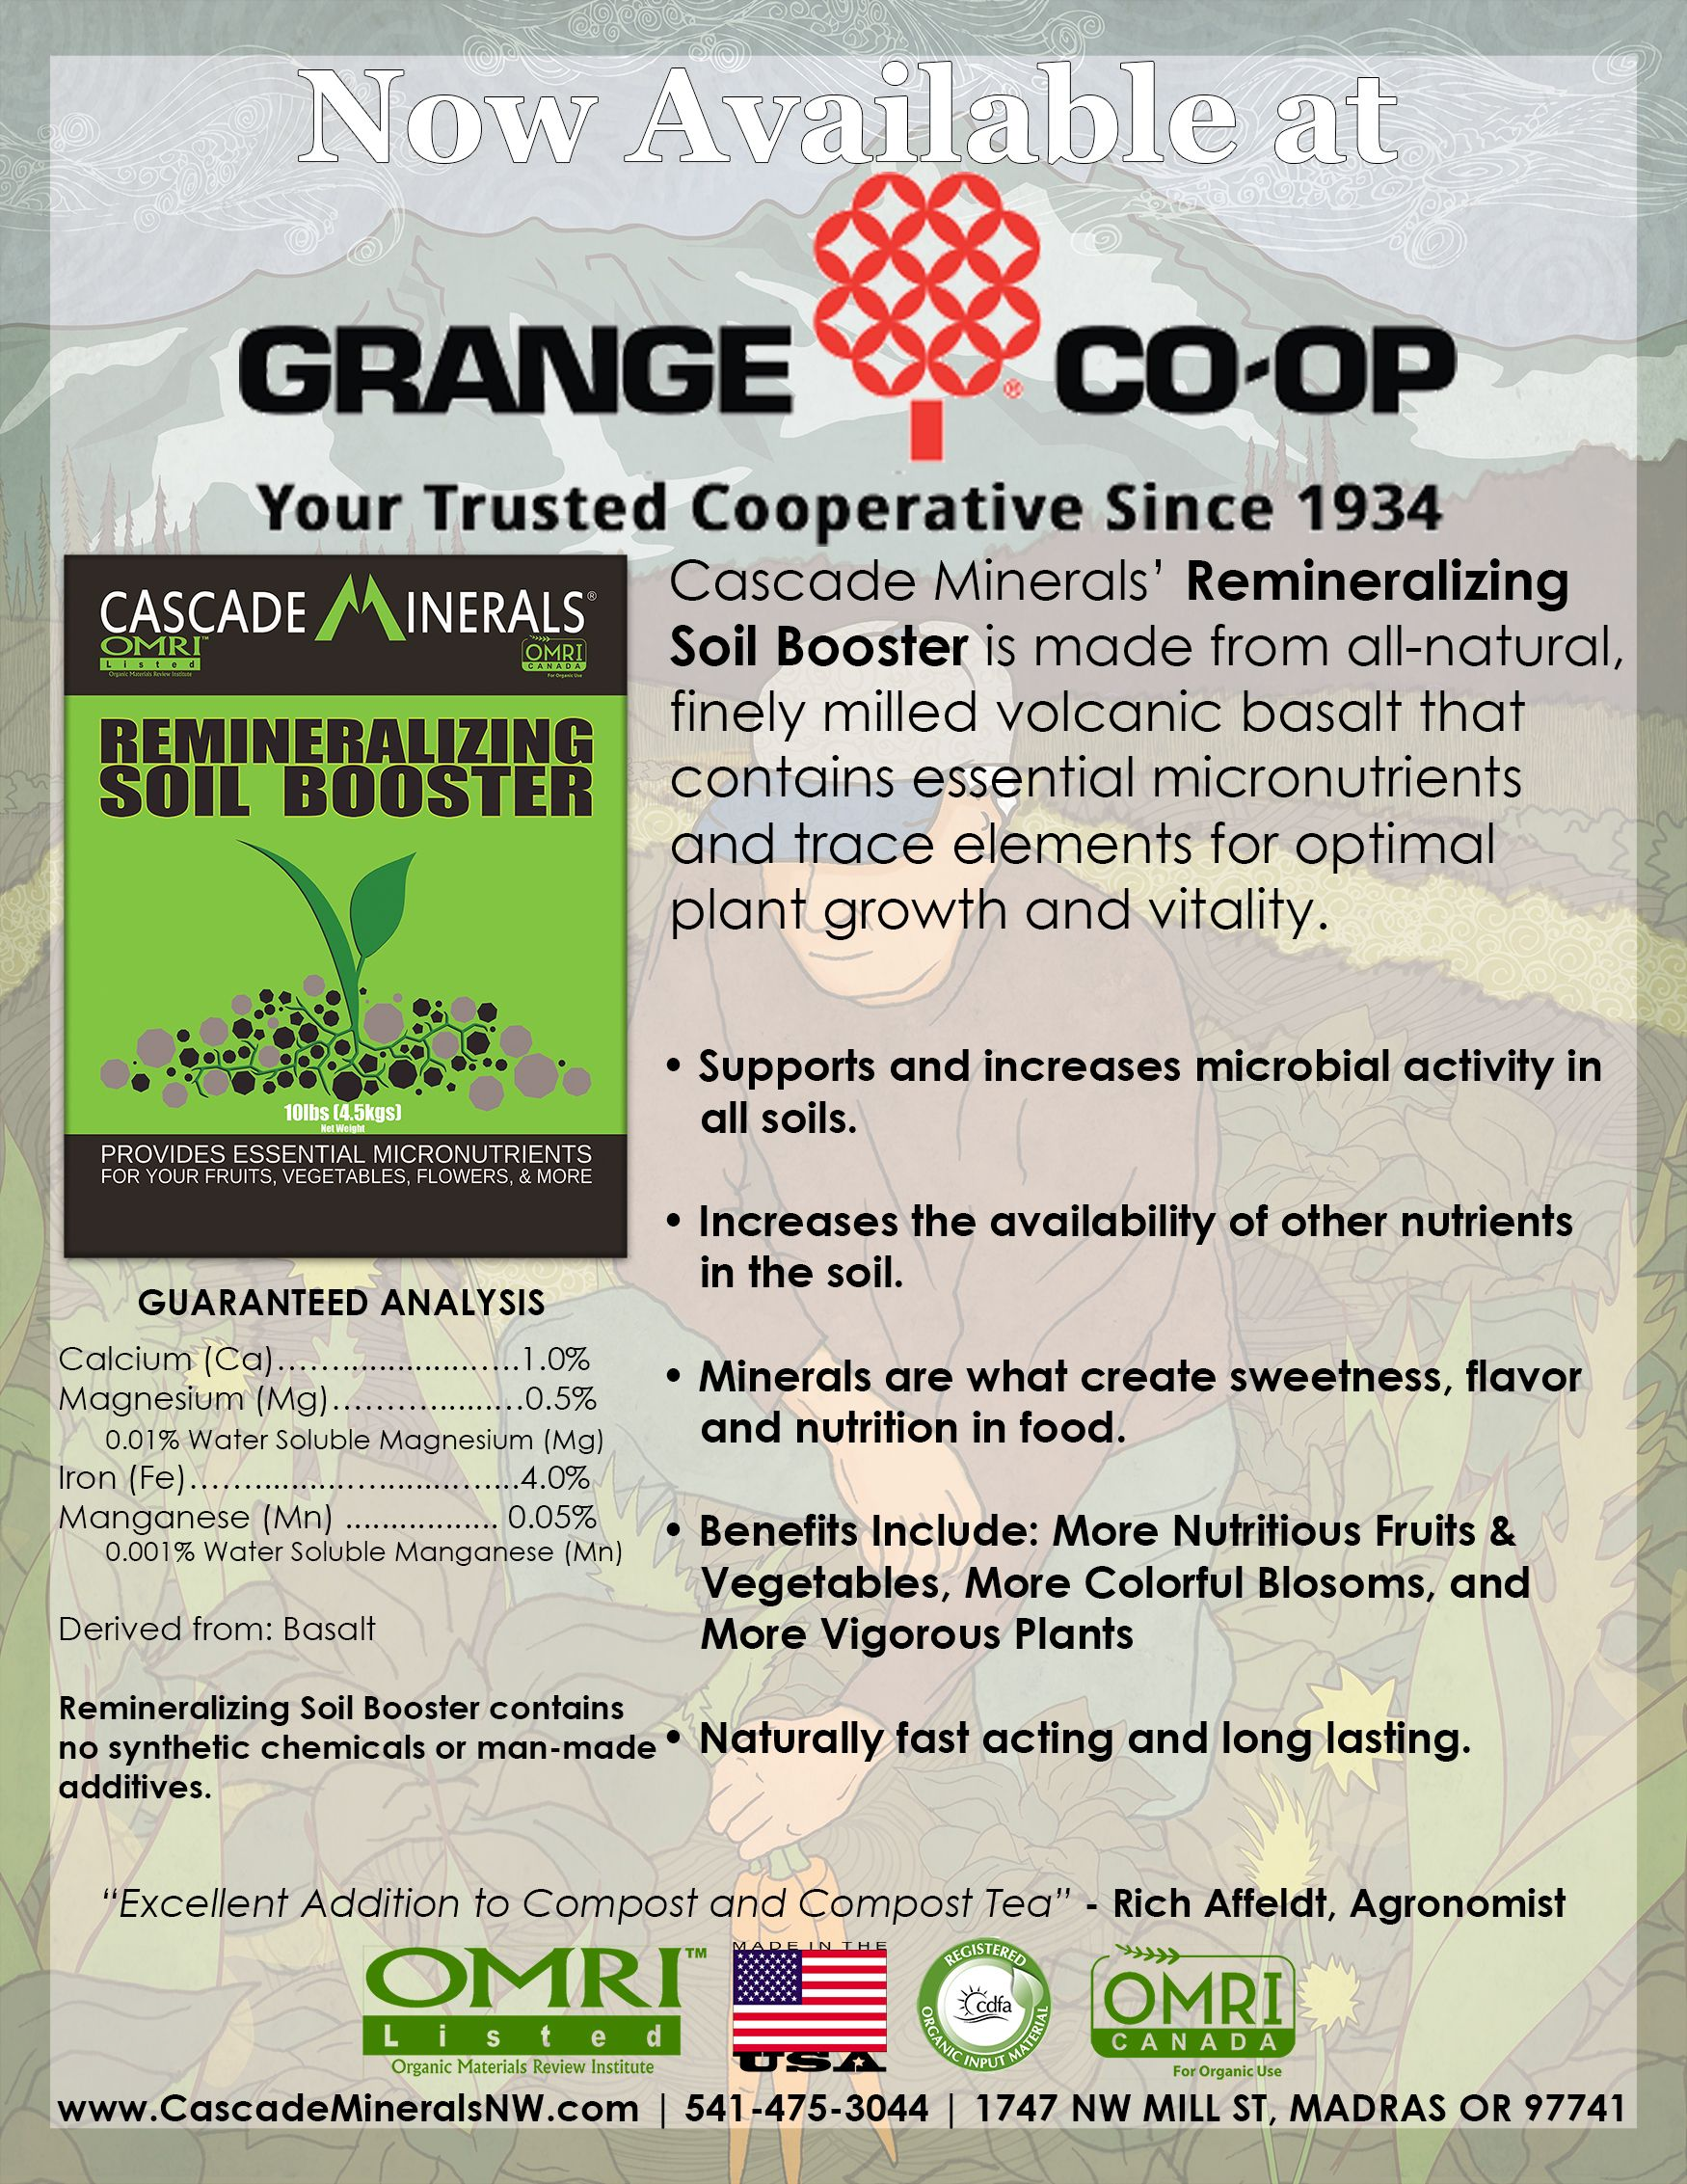 Cascade Minerals Remineralizing Soil Booster is available